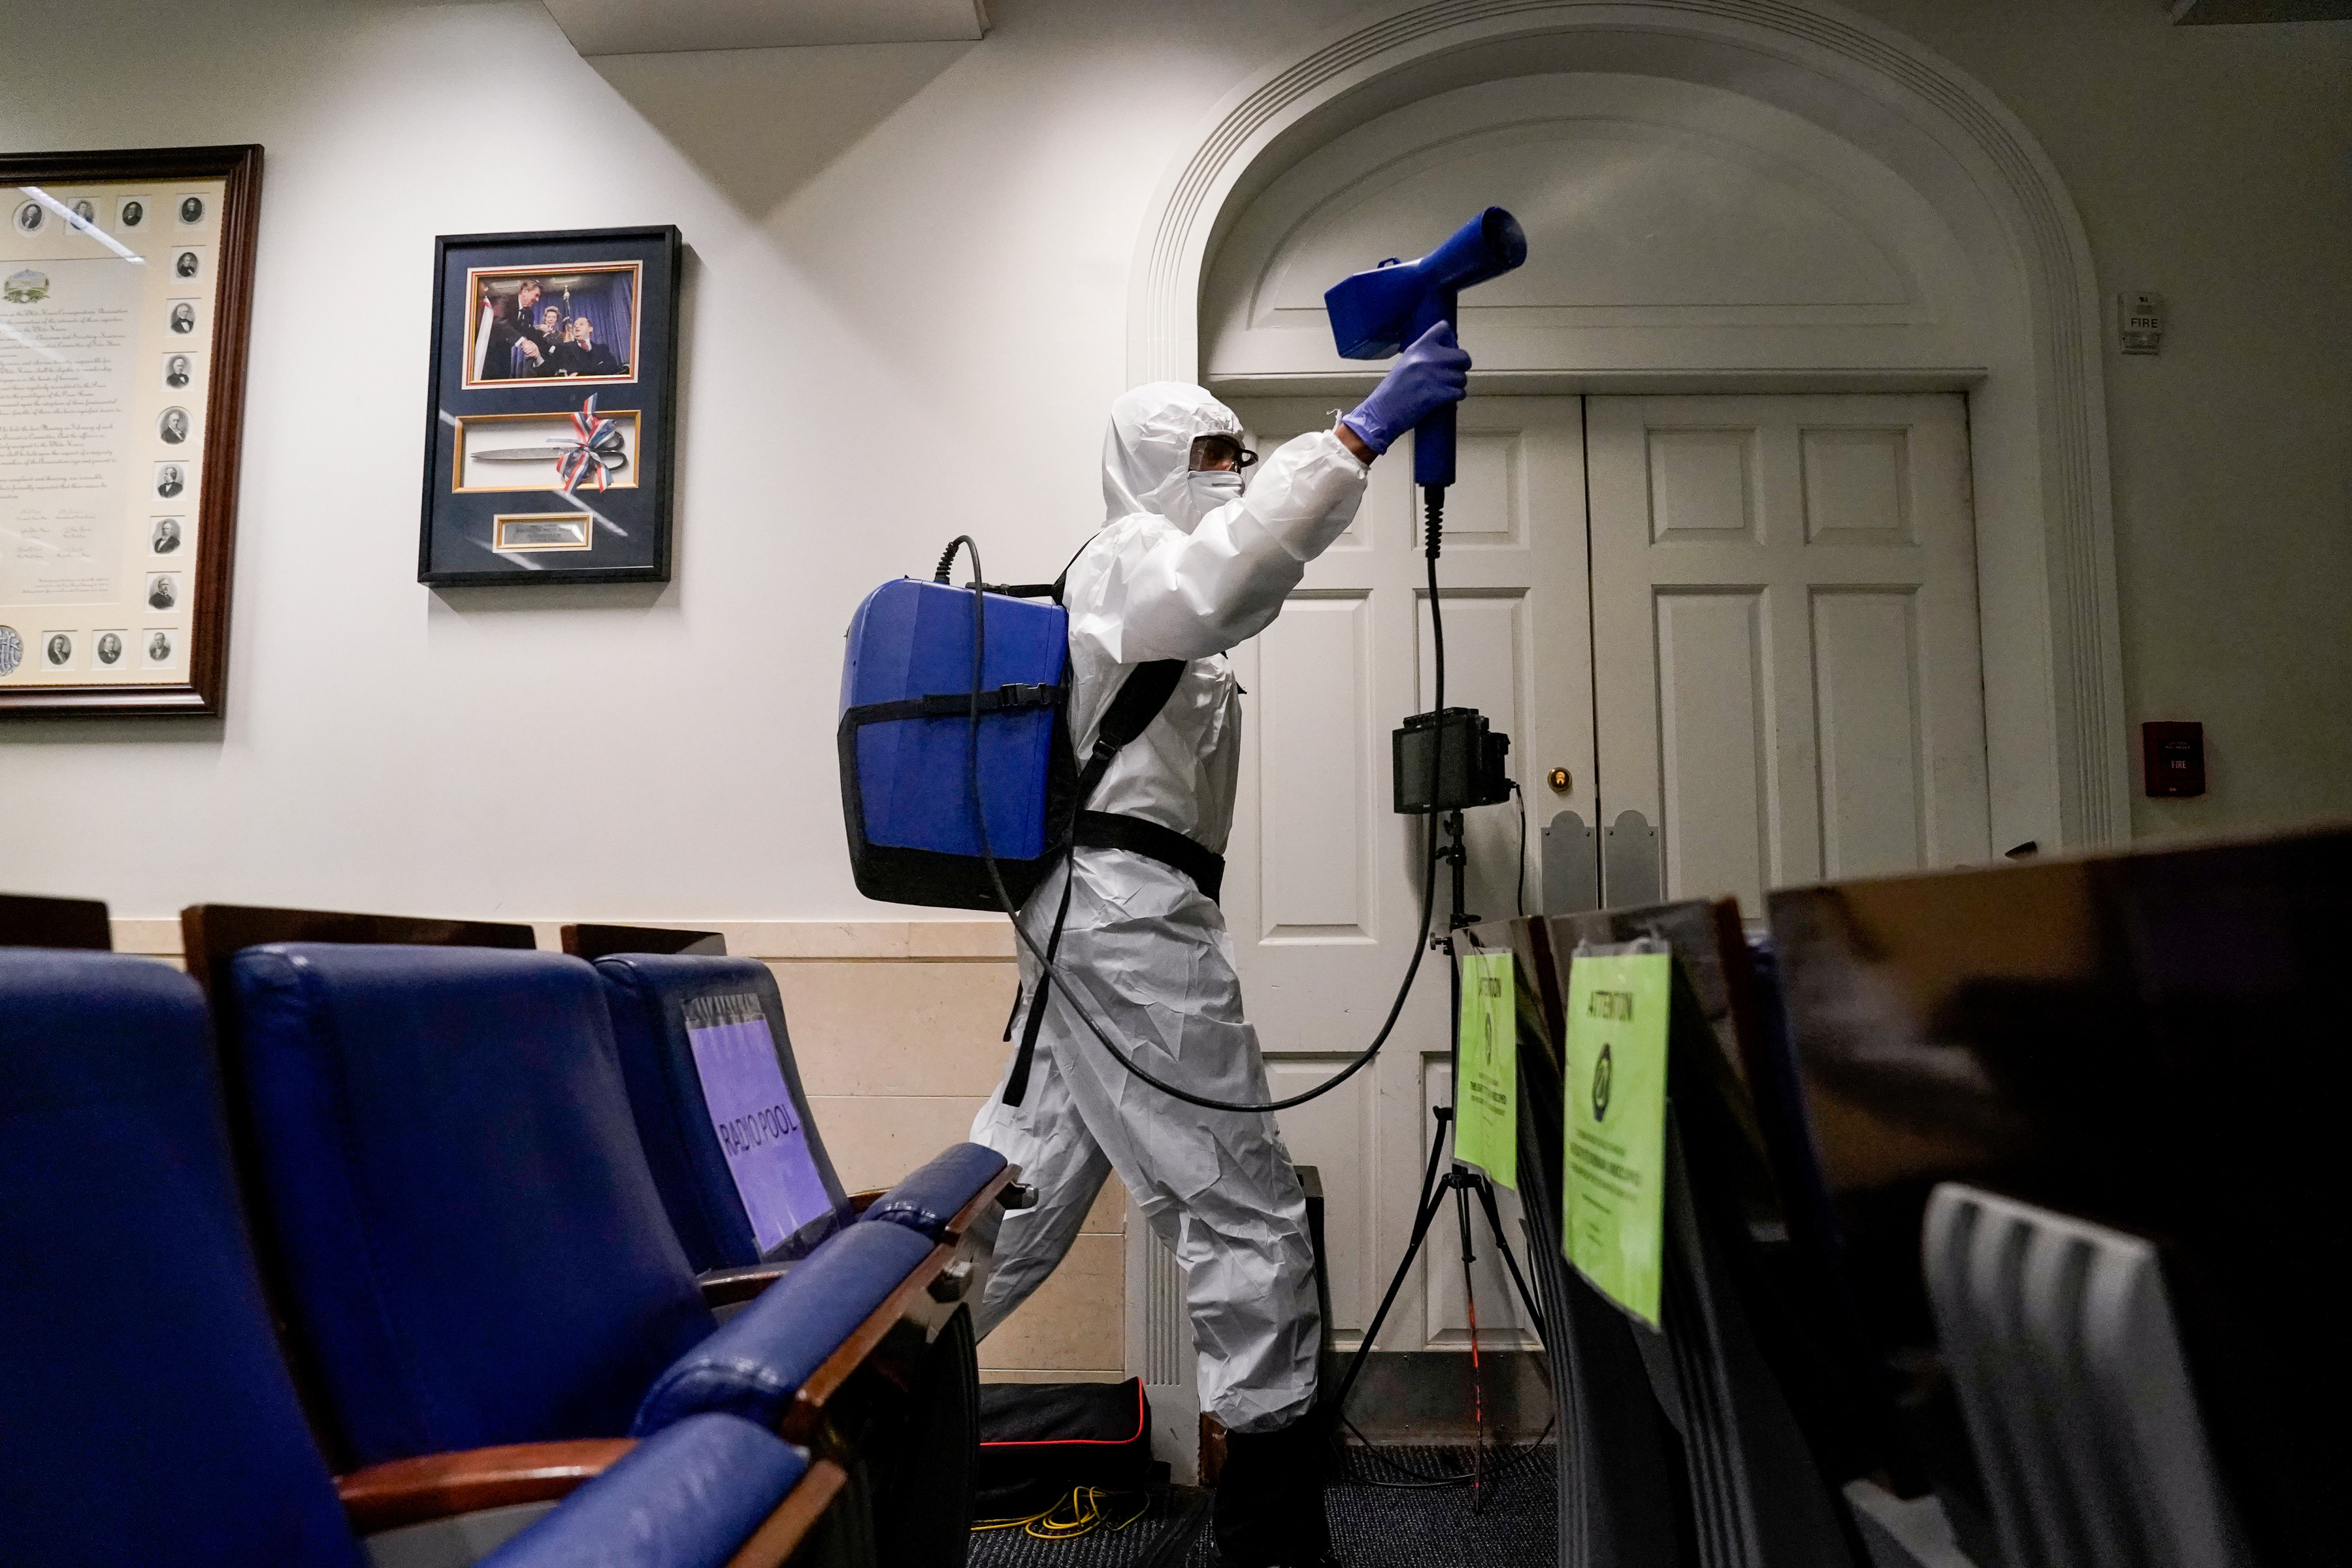 The White House press briefing room is cleaned on the evening U.S. President Donald Trump returns from Walter Reed Medical Center after contracting COVID-19, in Washington, DC, October 5, 2020.